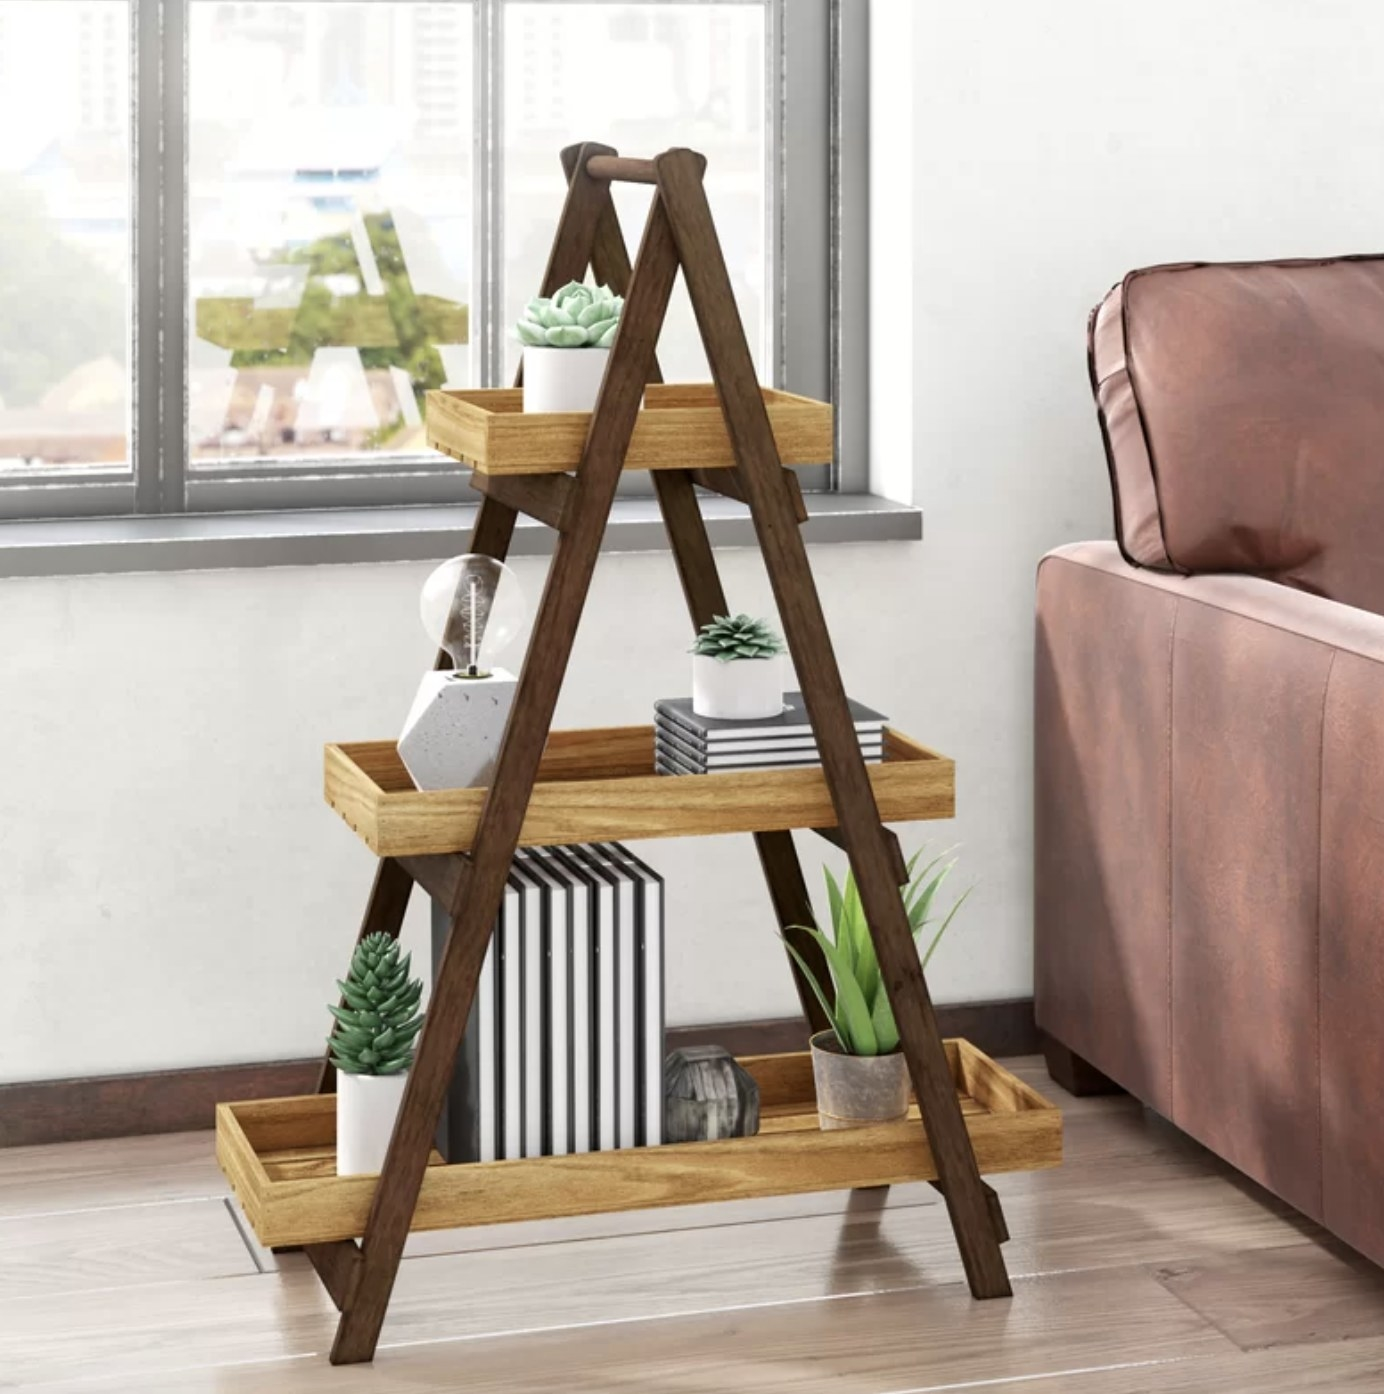 the multi tiered plant stand